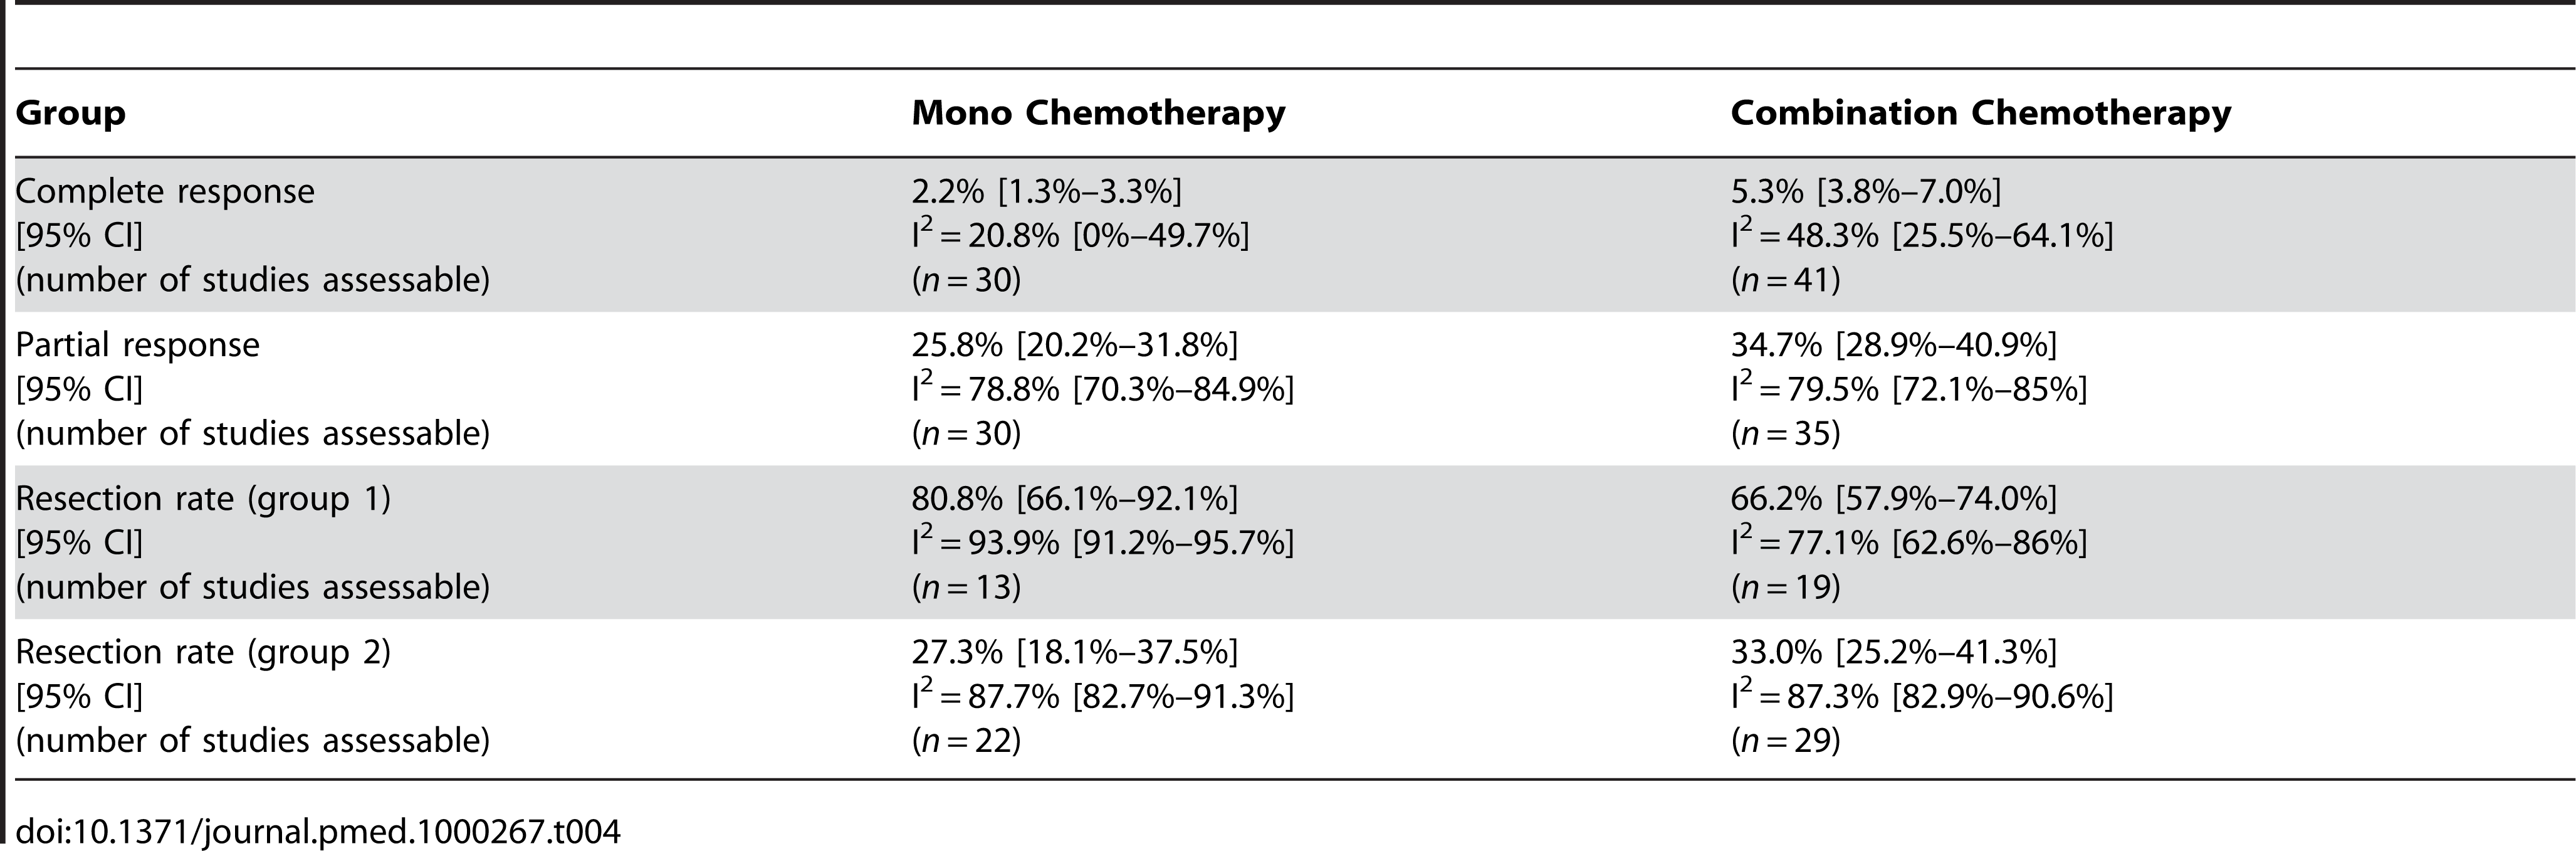 Estimates of percentage of responses and resections in patients receiving mono chemotherapy versus combination chemotherapy groups including the 95% confidence interval from the random effect model and number of assessable studies for each group (<i>n</i>).